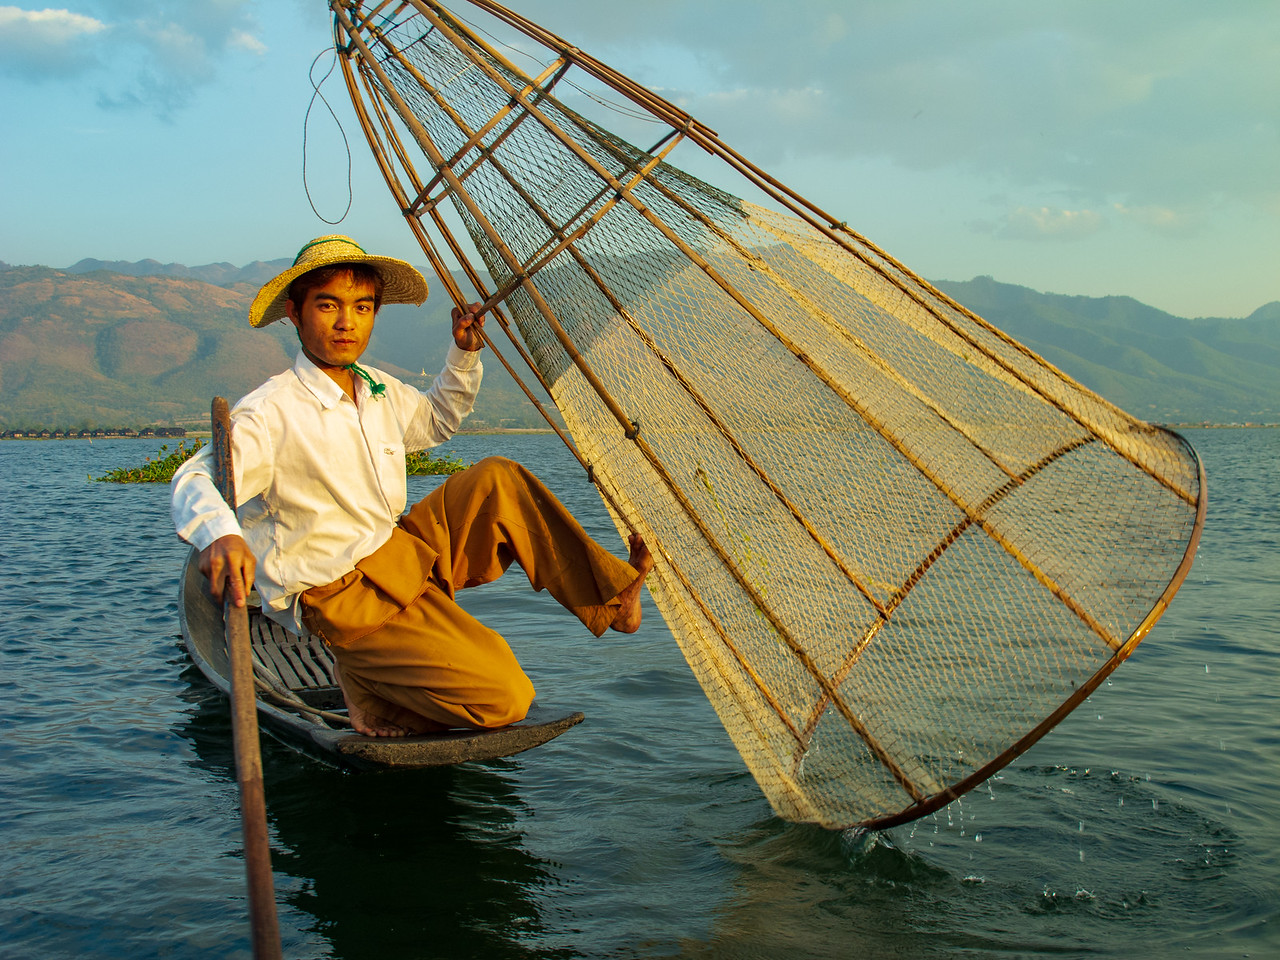 The Fishermen of Inle Lake, Myanmar